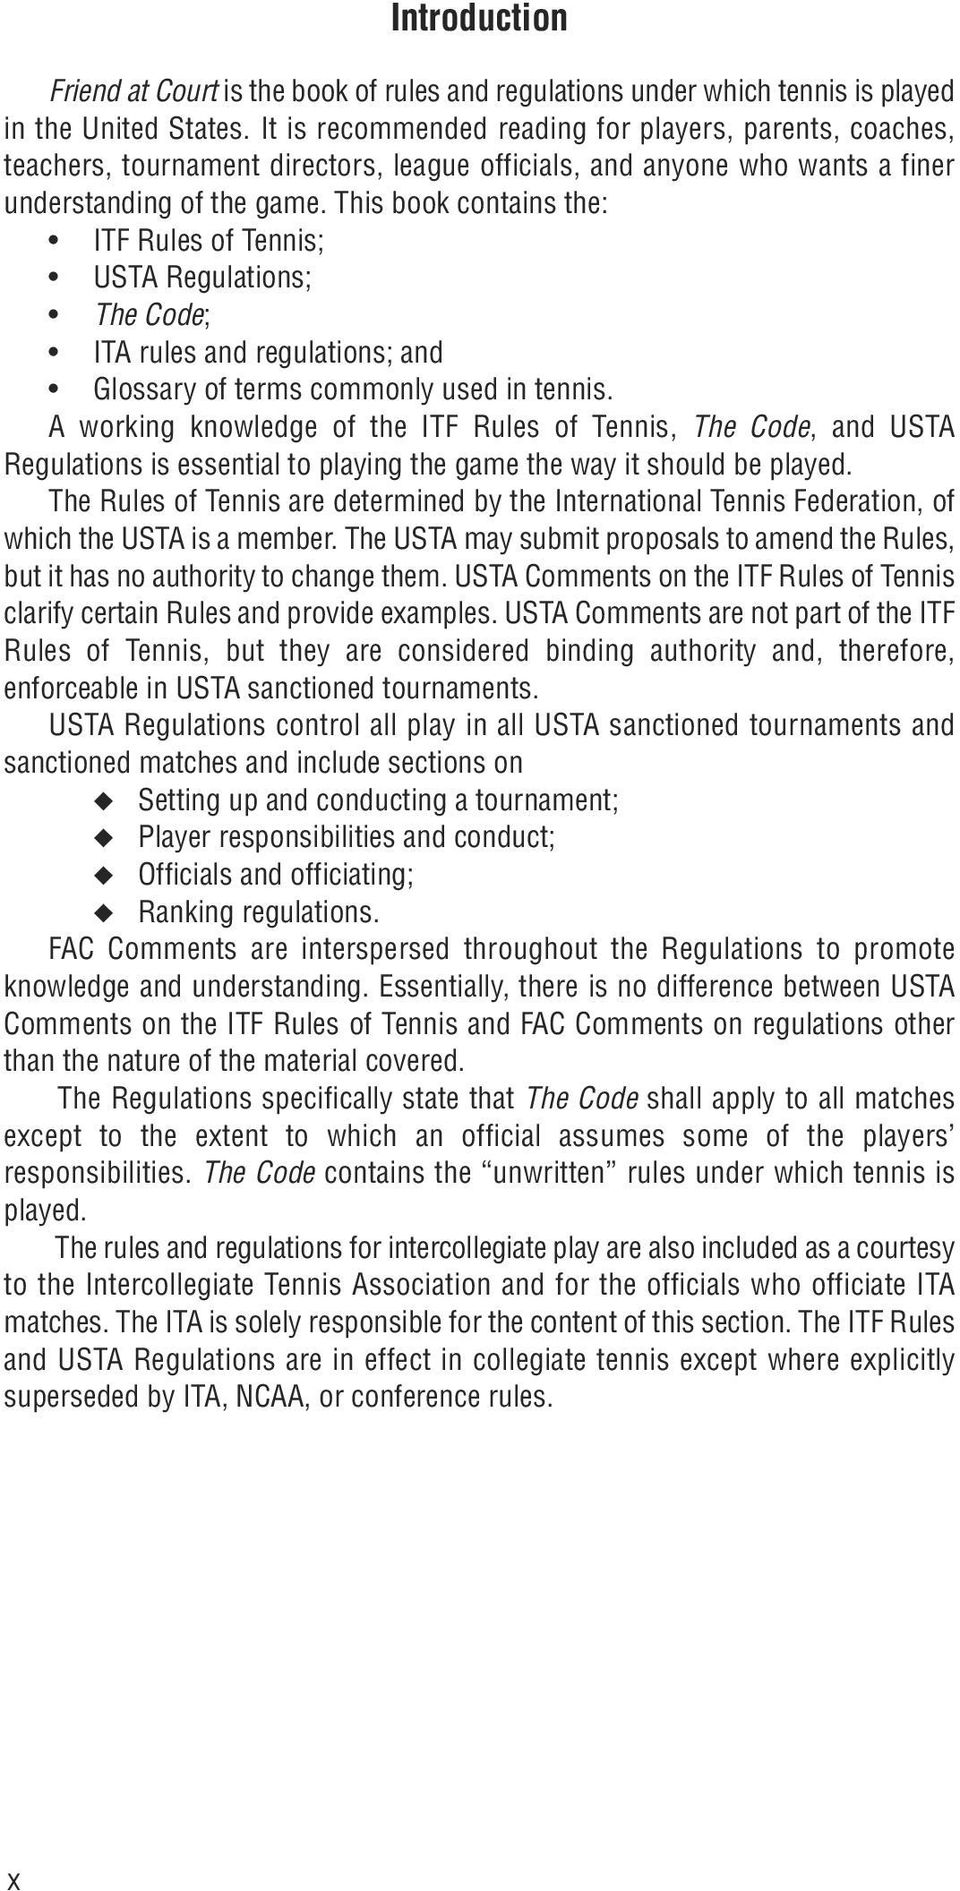 This book contains the: ITF Rules of Tennis; USTA Regulations; The Code; ITA rules and regulations; and Glossary of terms commonly used in tennis.